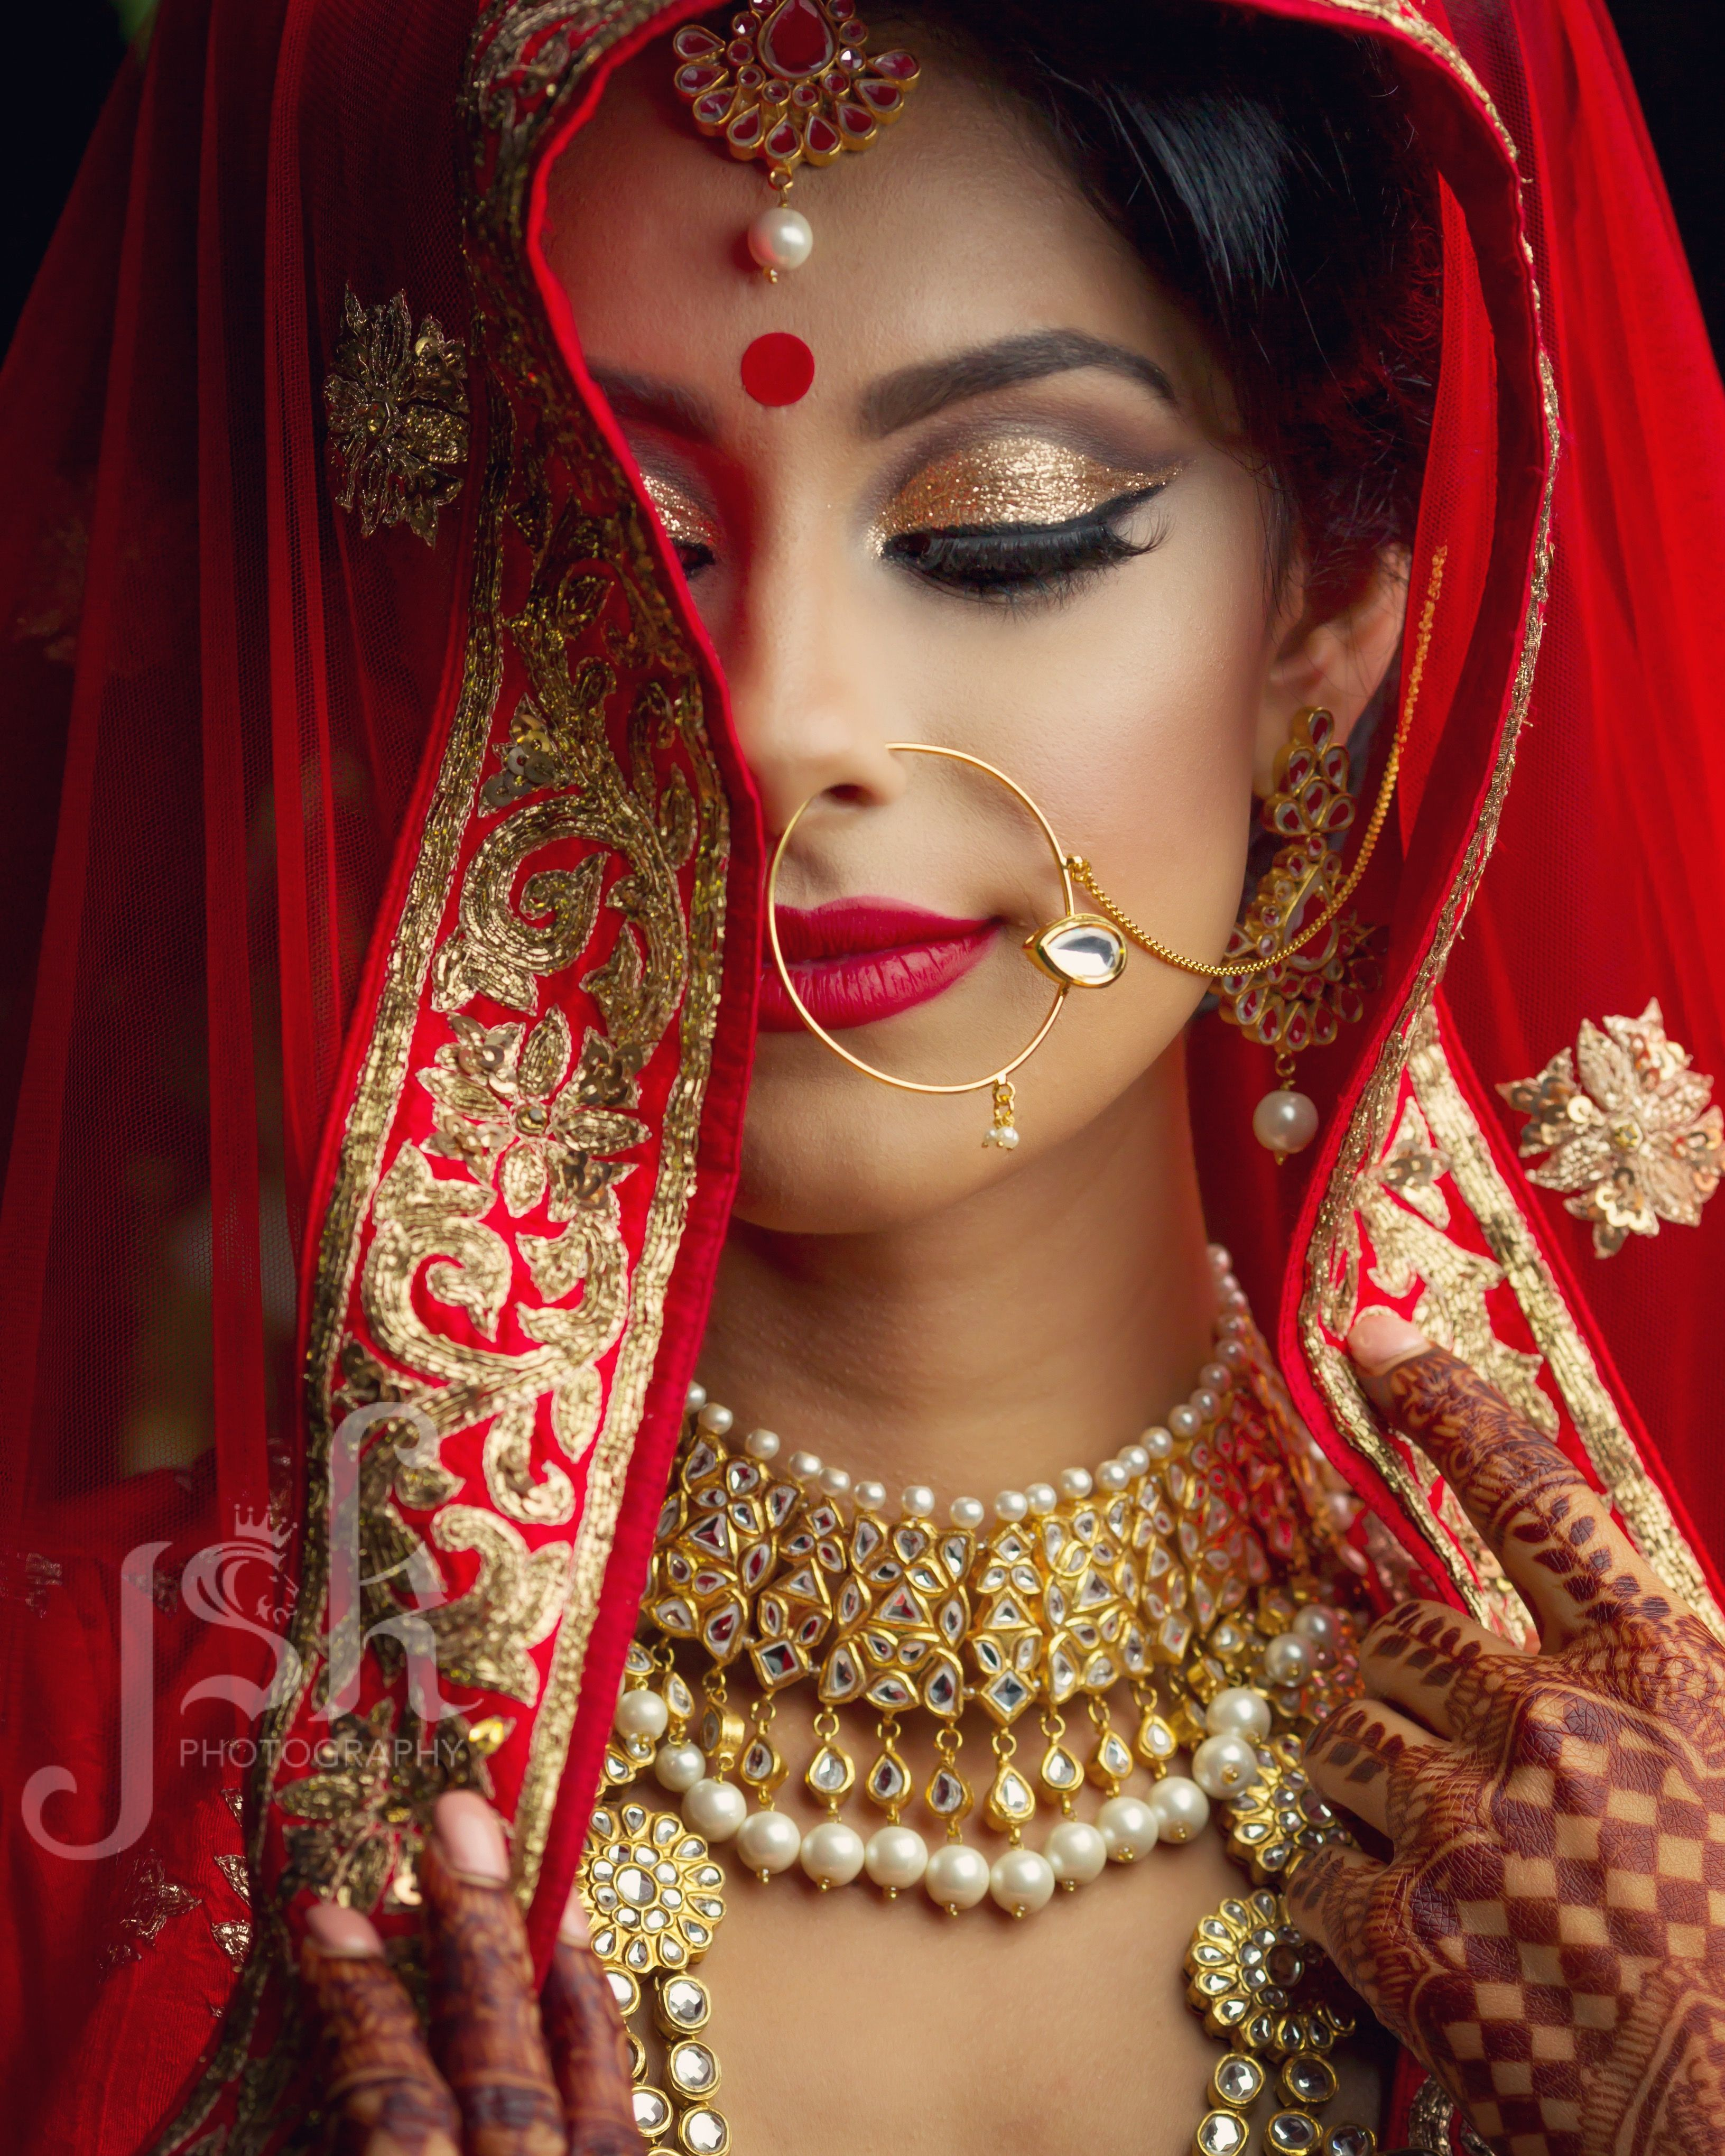 editorial photo shoot by jsk photography. traditional red